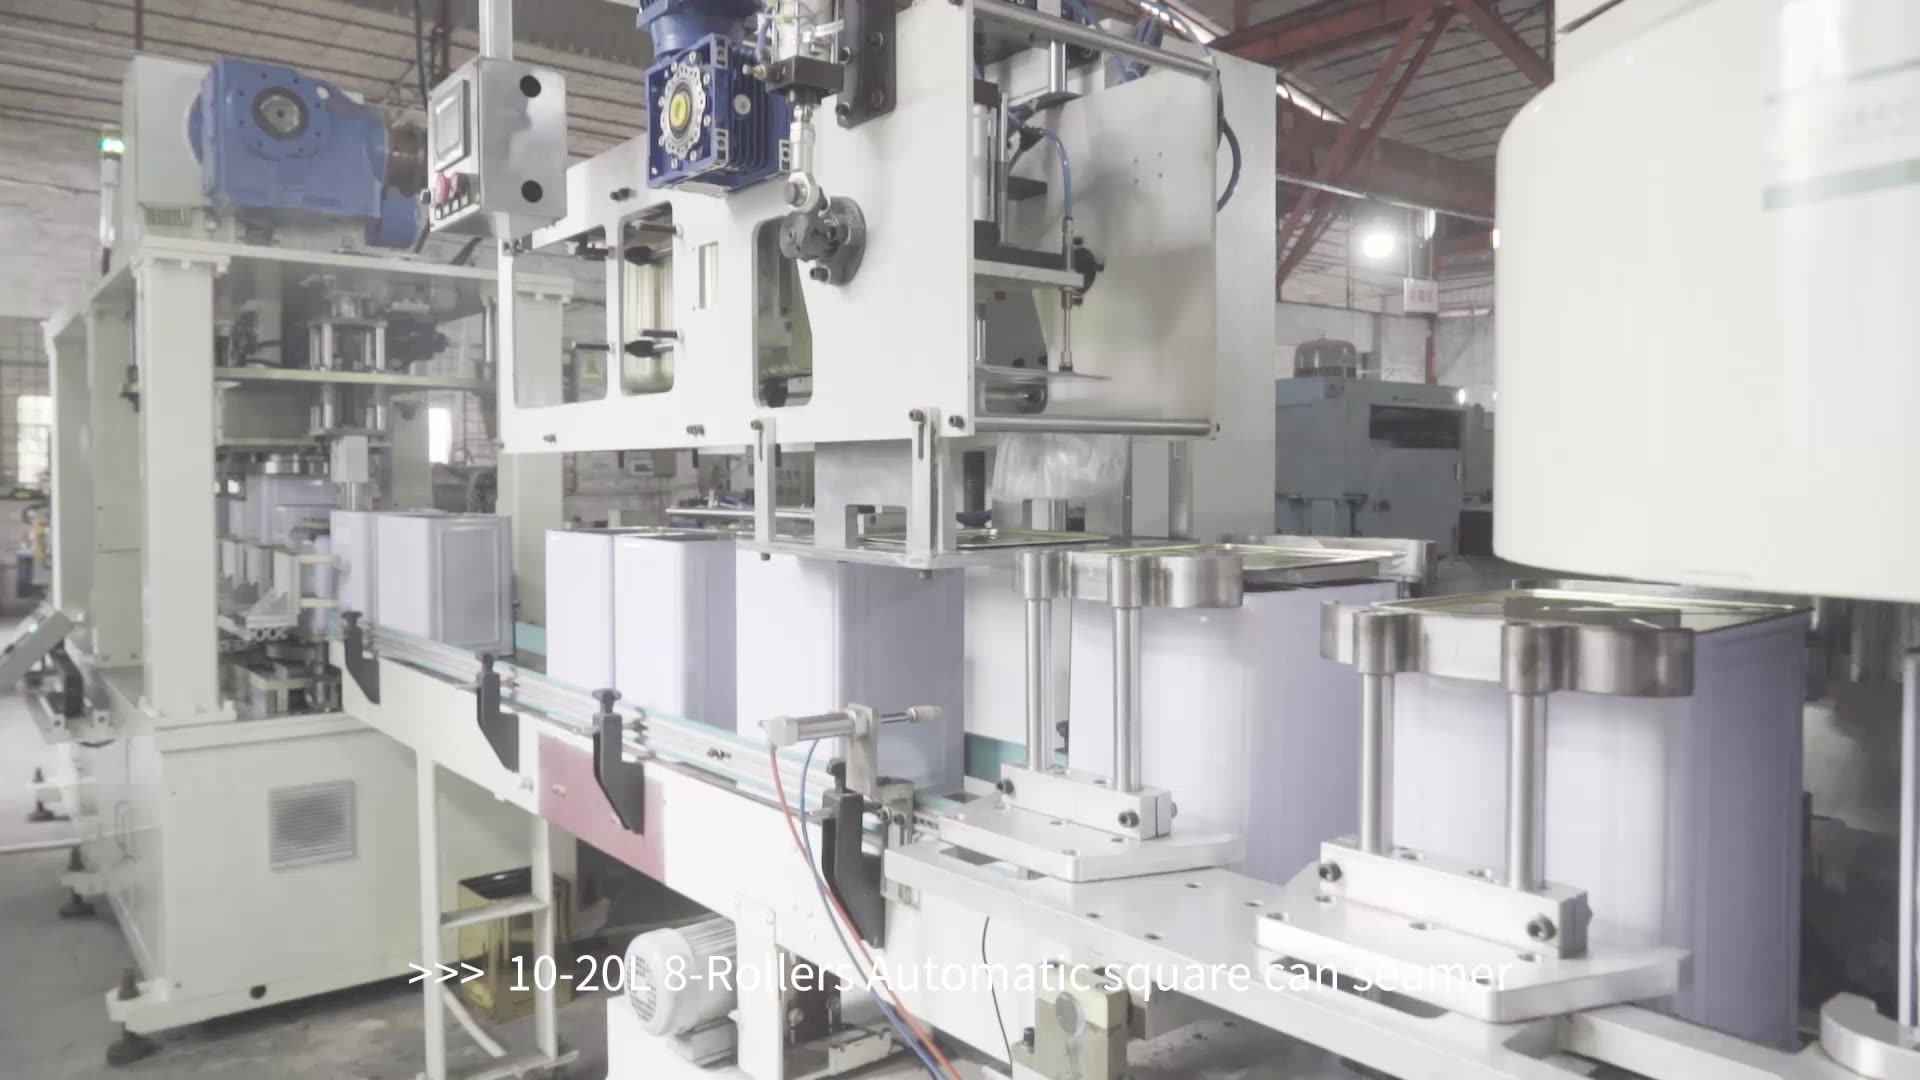 Yixin Technology 10-20L Automatic square can machine